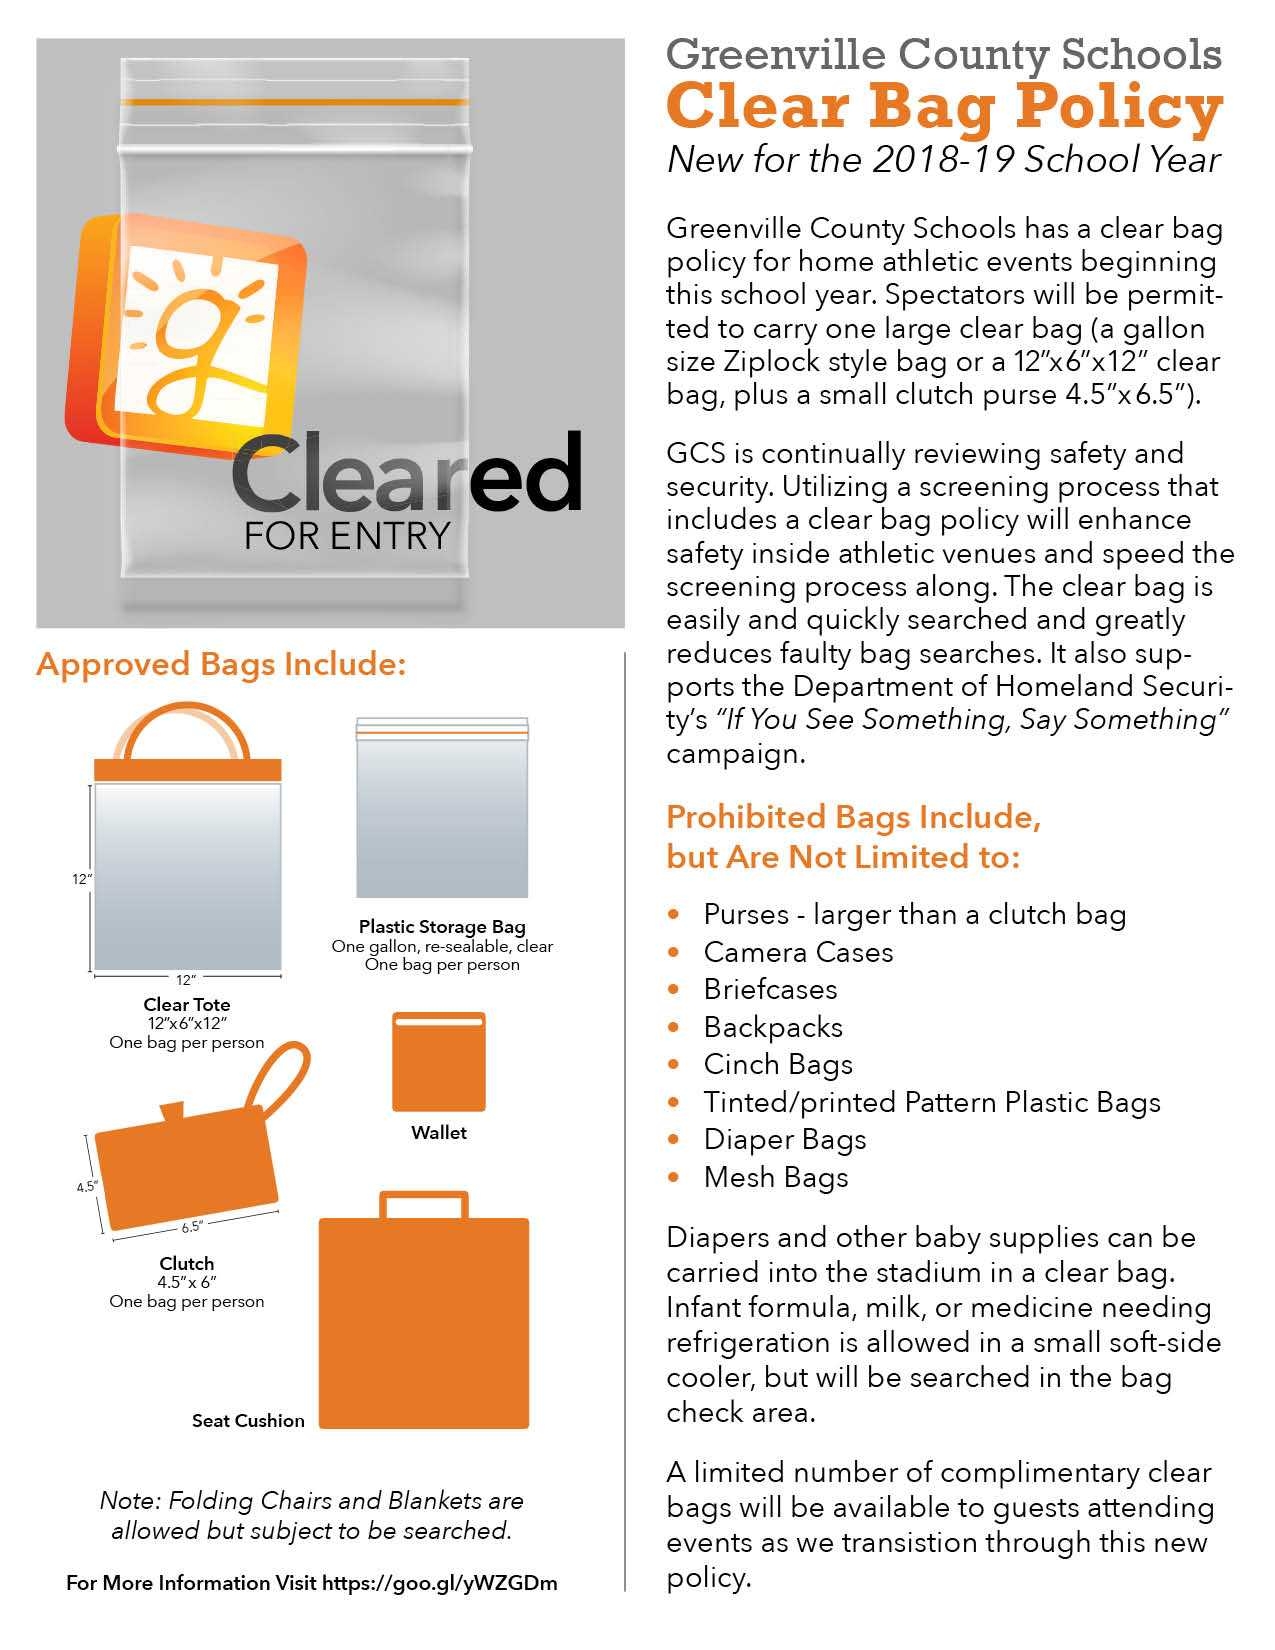 clear bag policy description